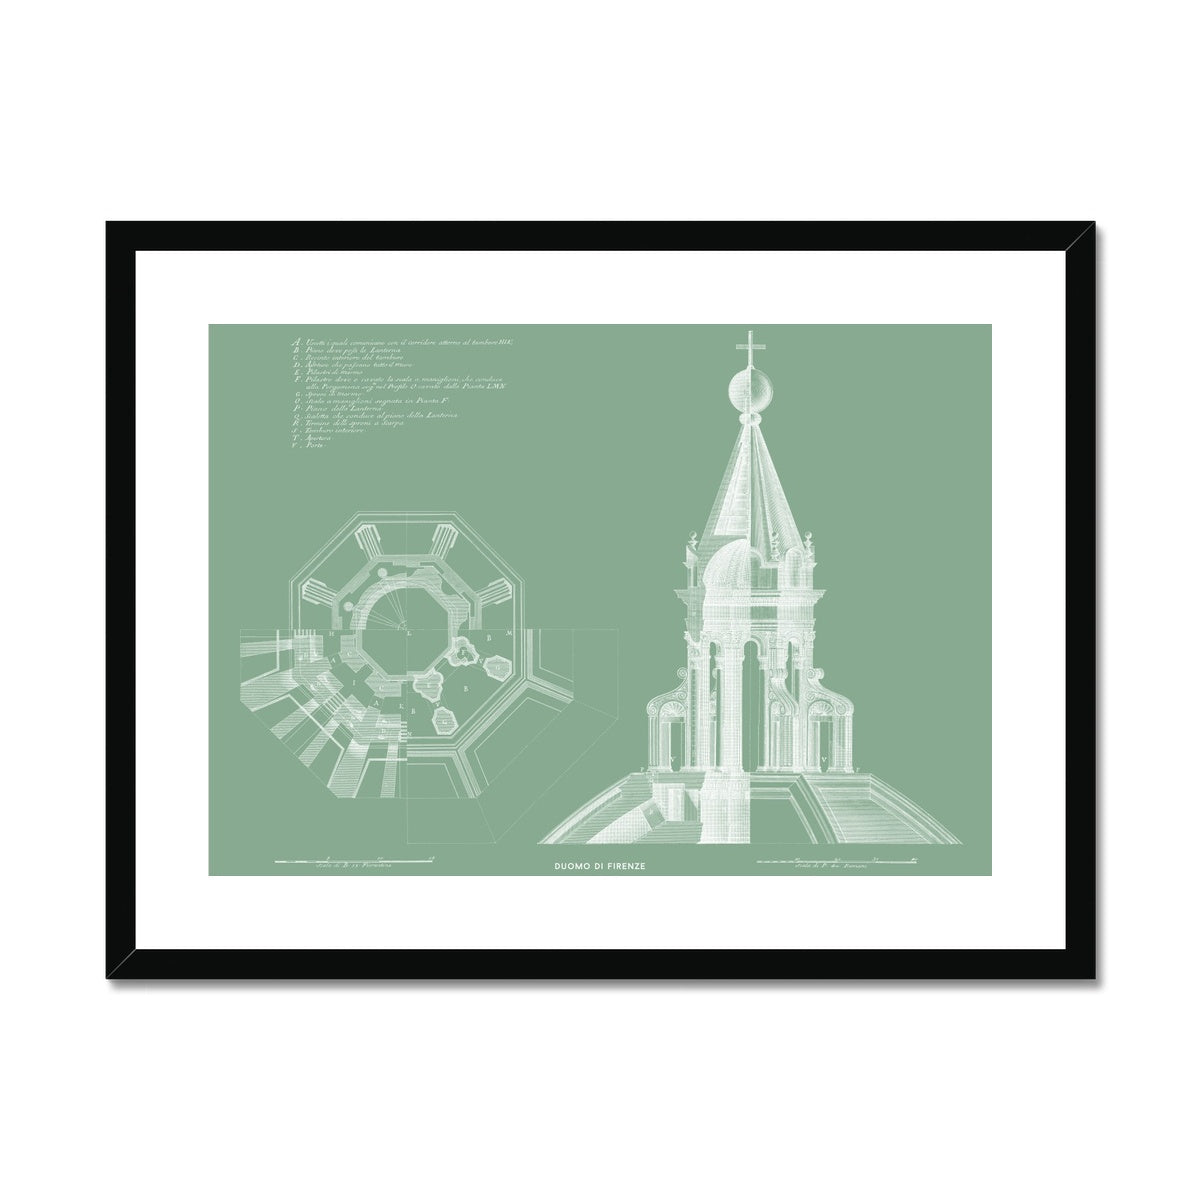 Duomo di Firenze - Lantern Detail - Green -  Framed & Mounted Print